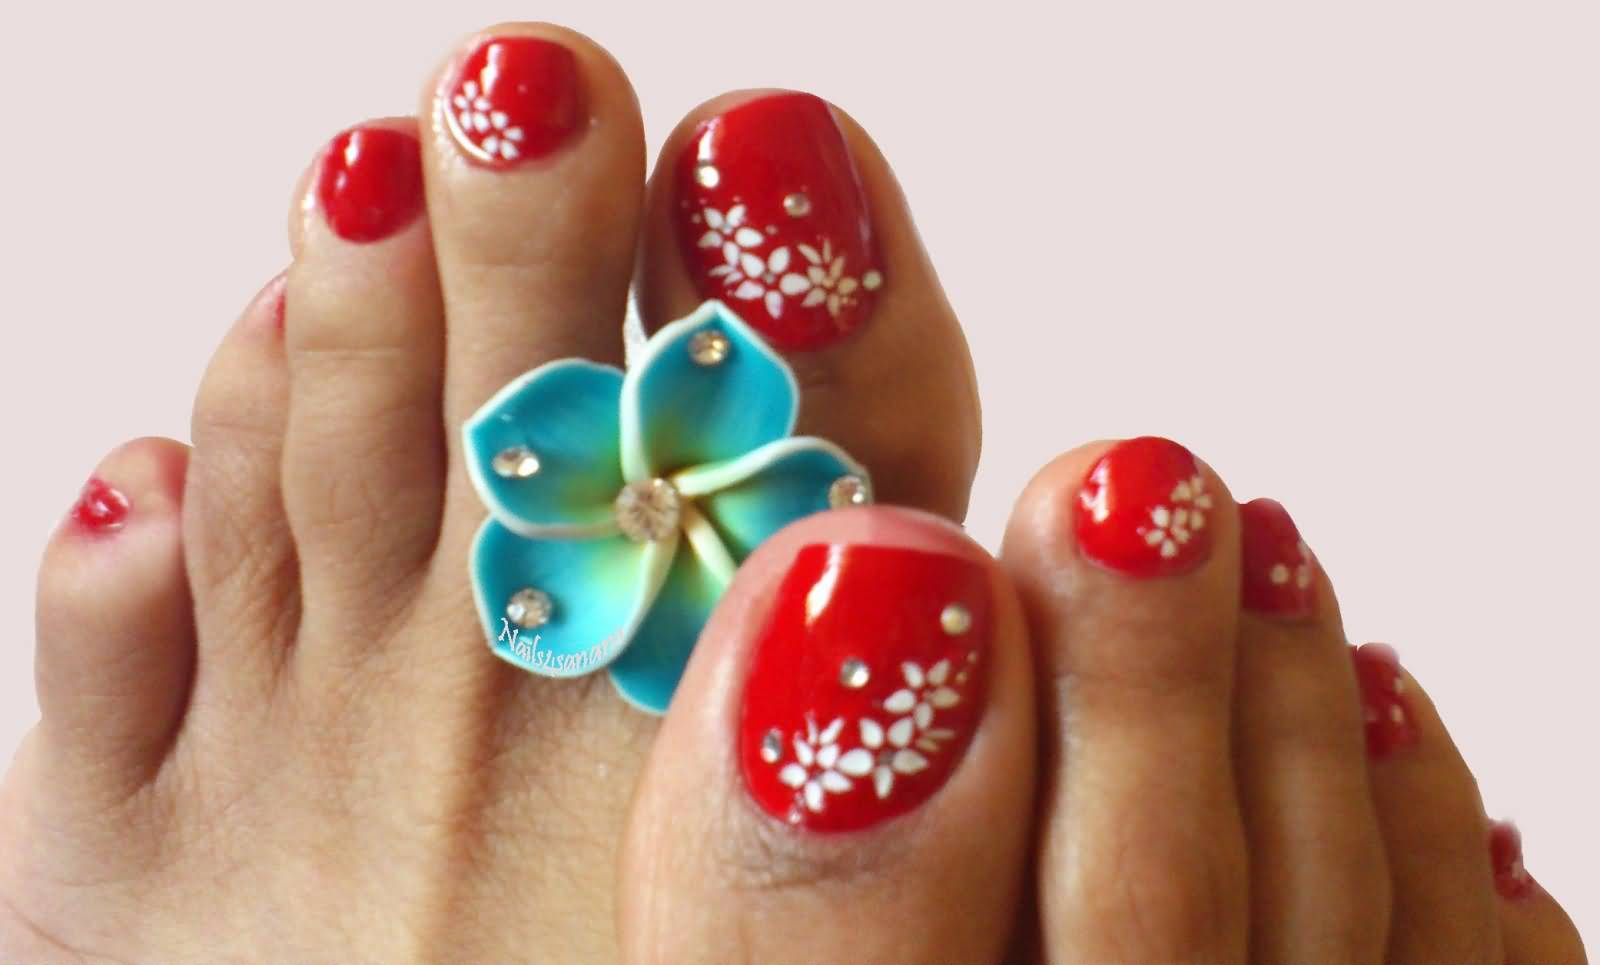 Red Toe Nails With White Flowers Nail Art